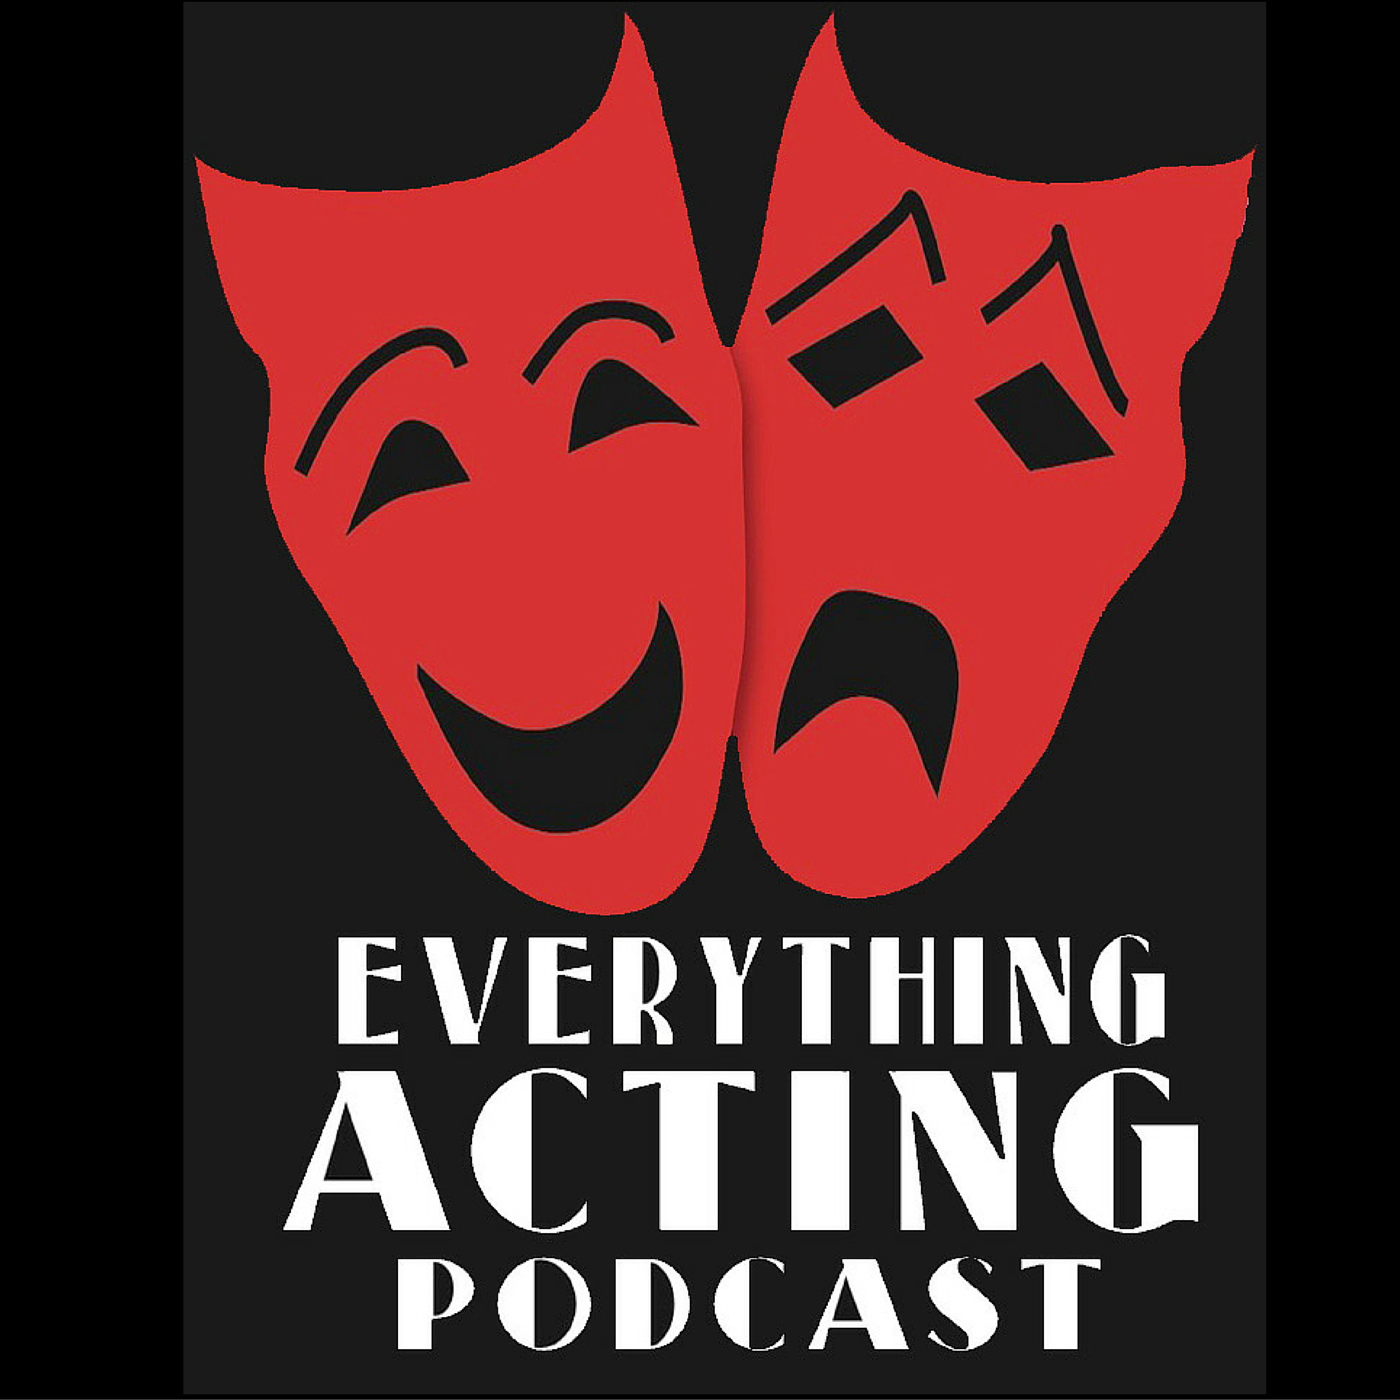 Episodes - Everything Acting Podcast